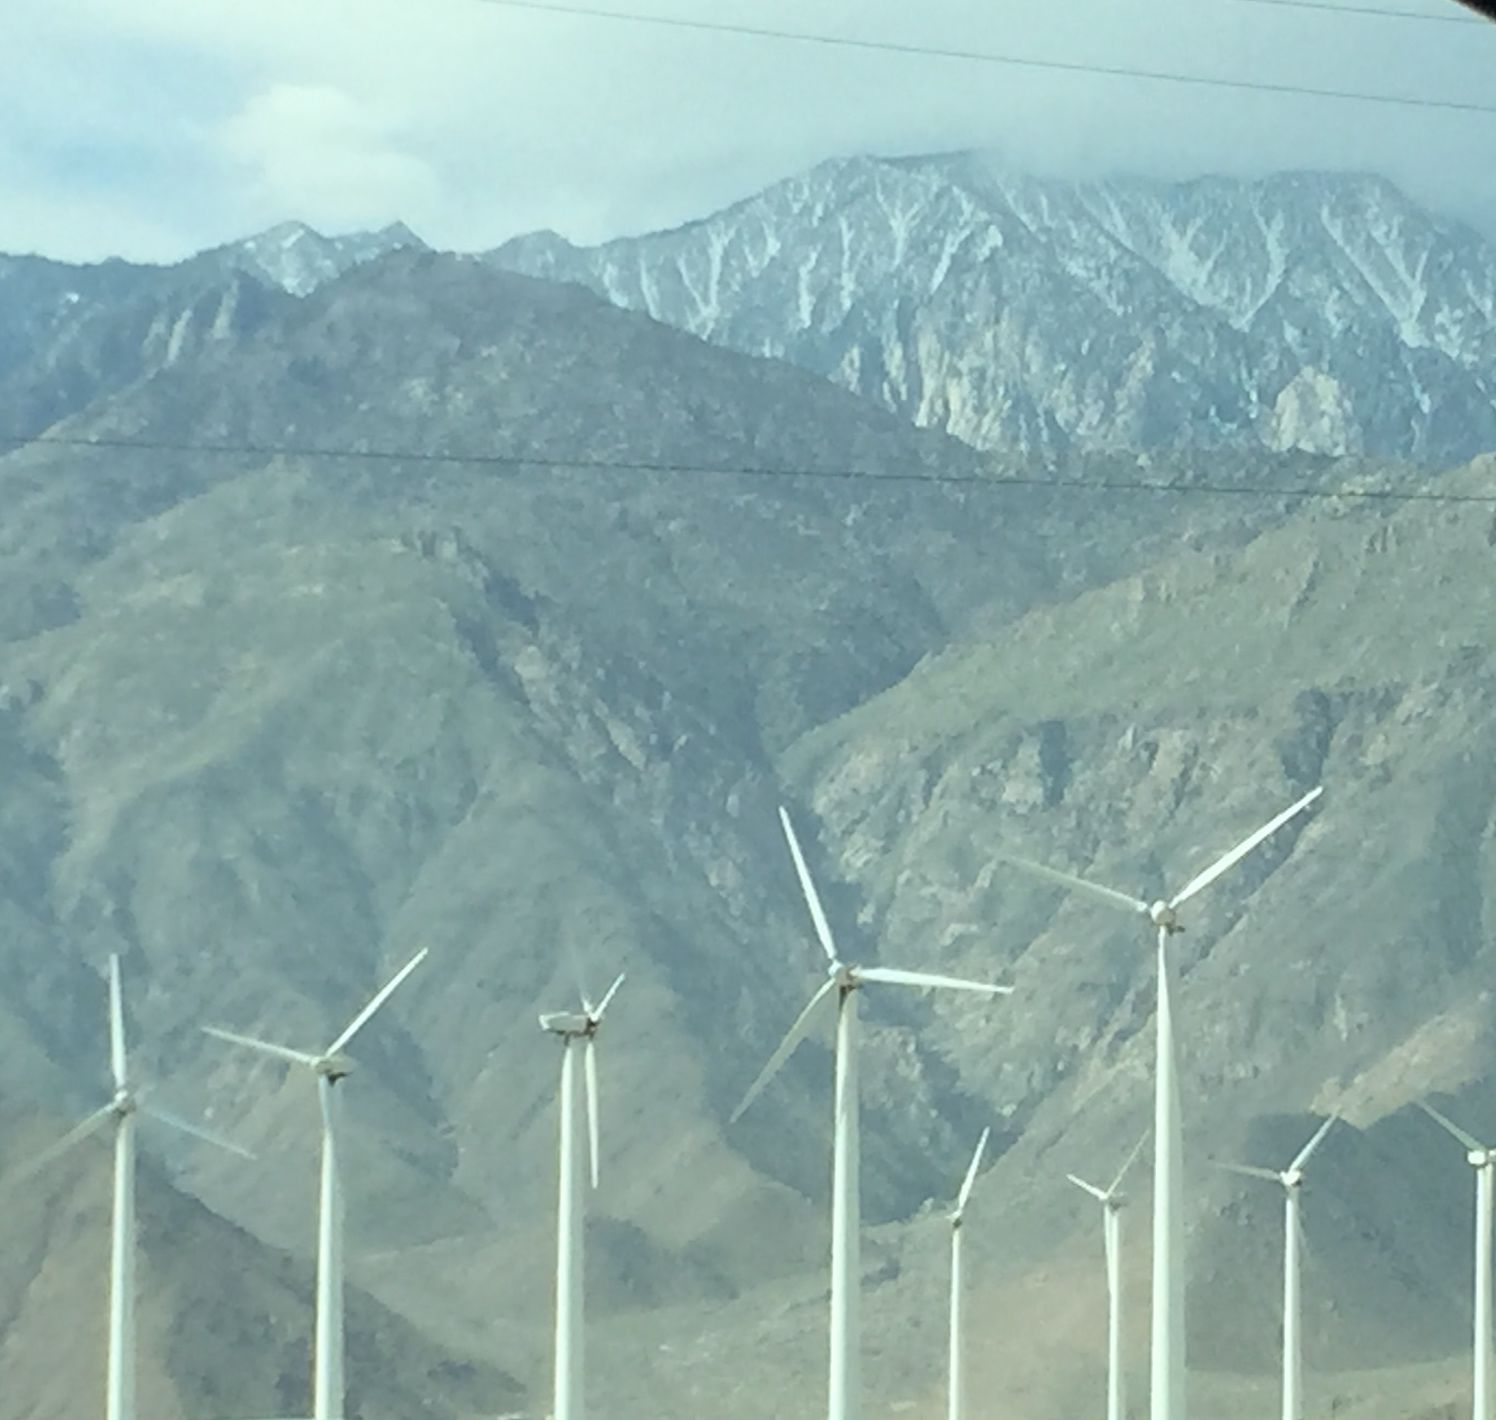 Windmills in the Palms Springs area with the San Jacinto Mountains peaking out with sparse snow.